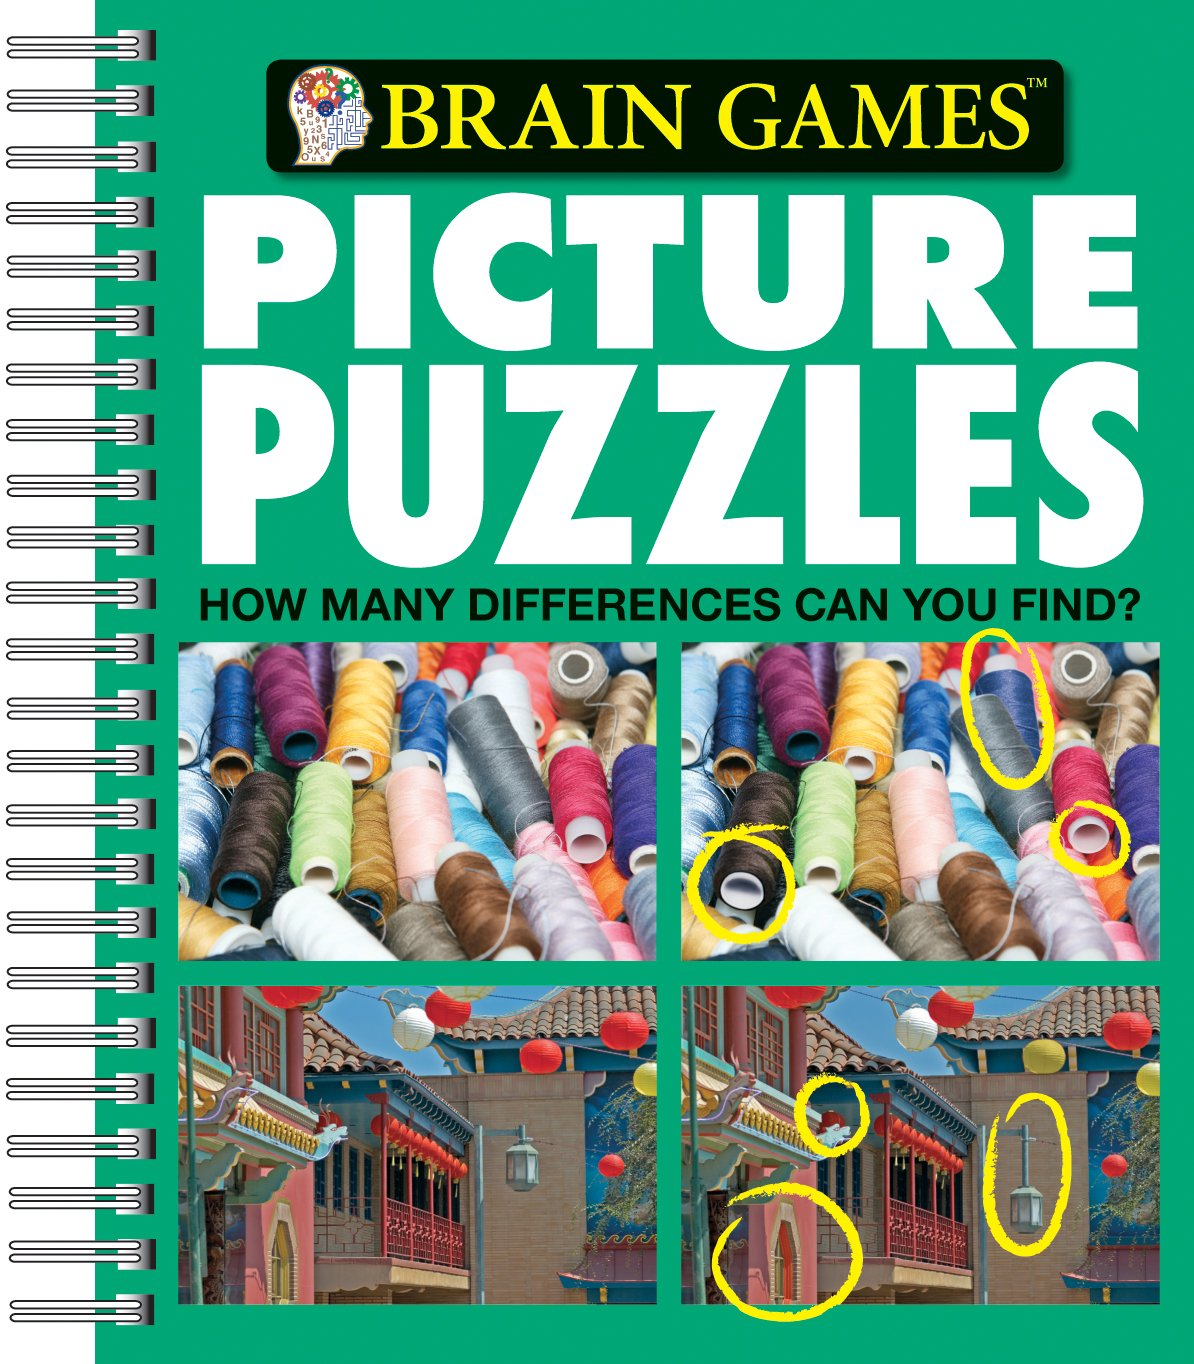 Picture Puzzles Differences Brain Games product image